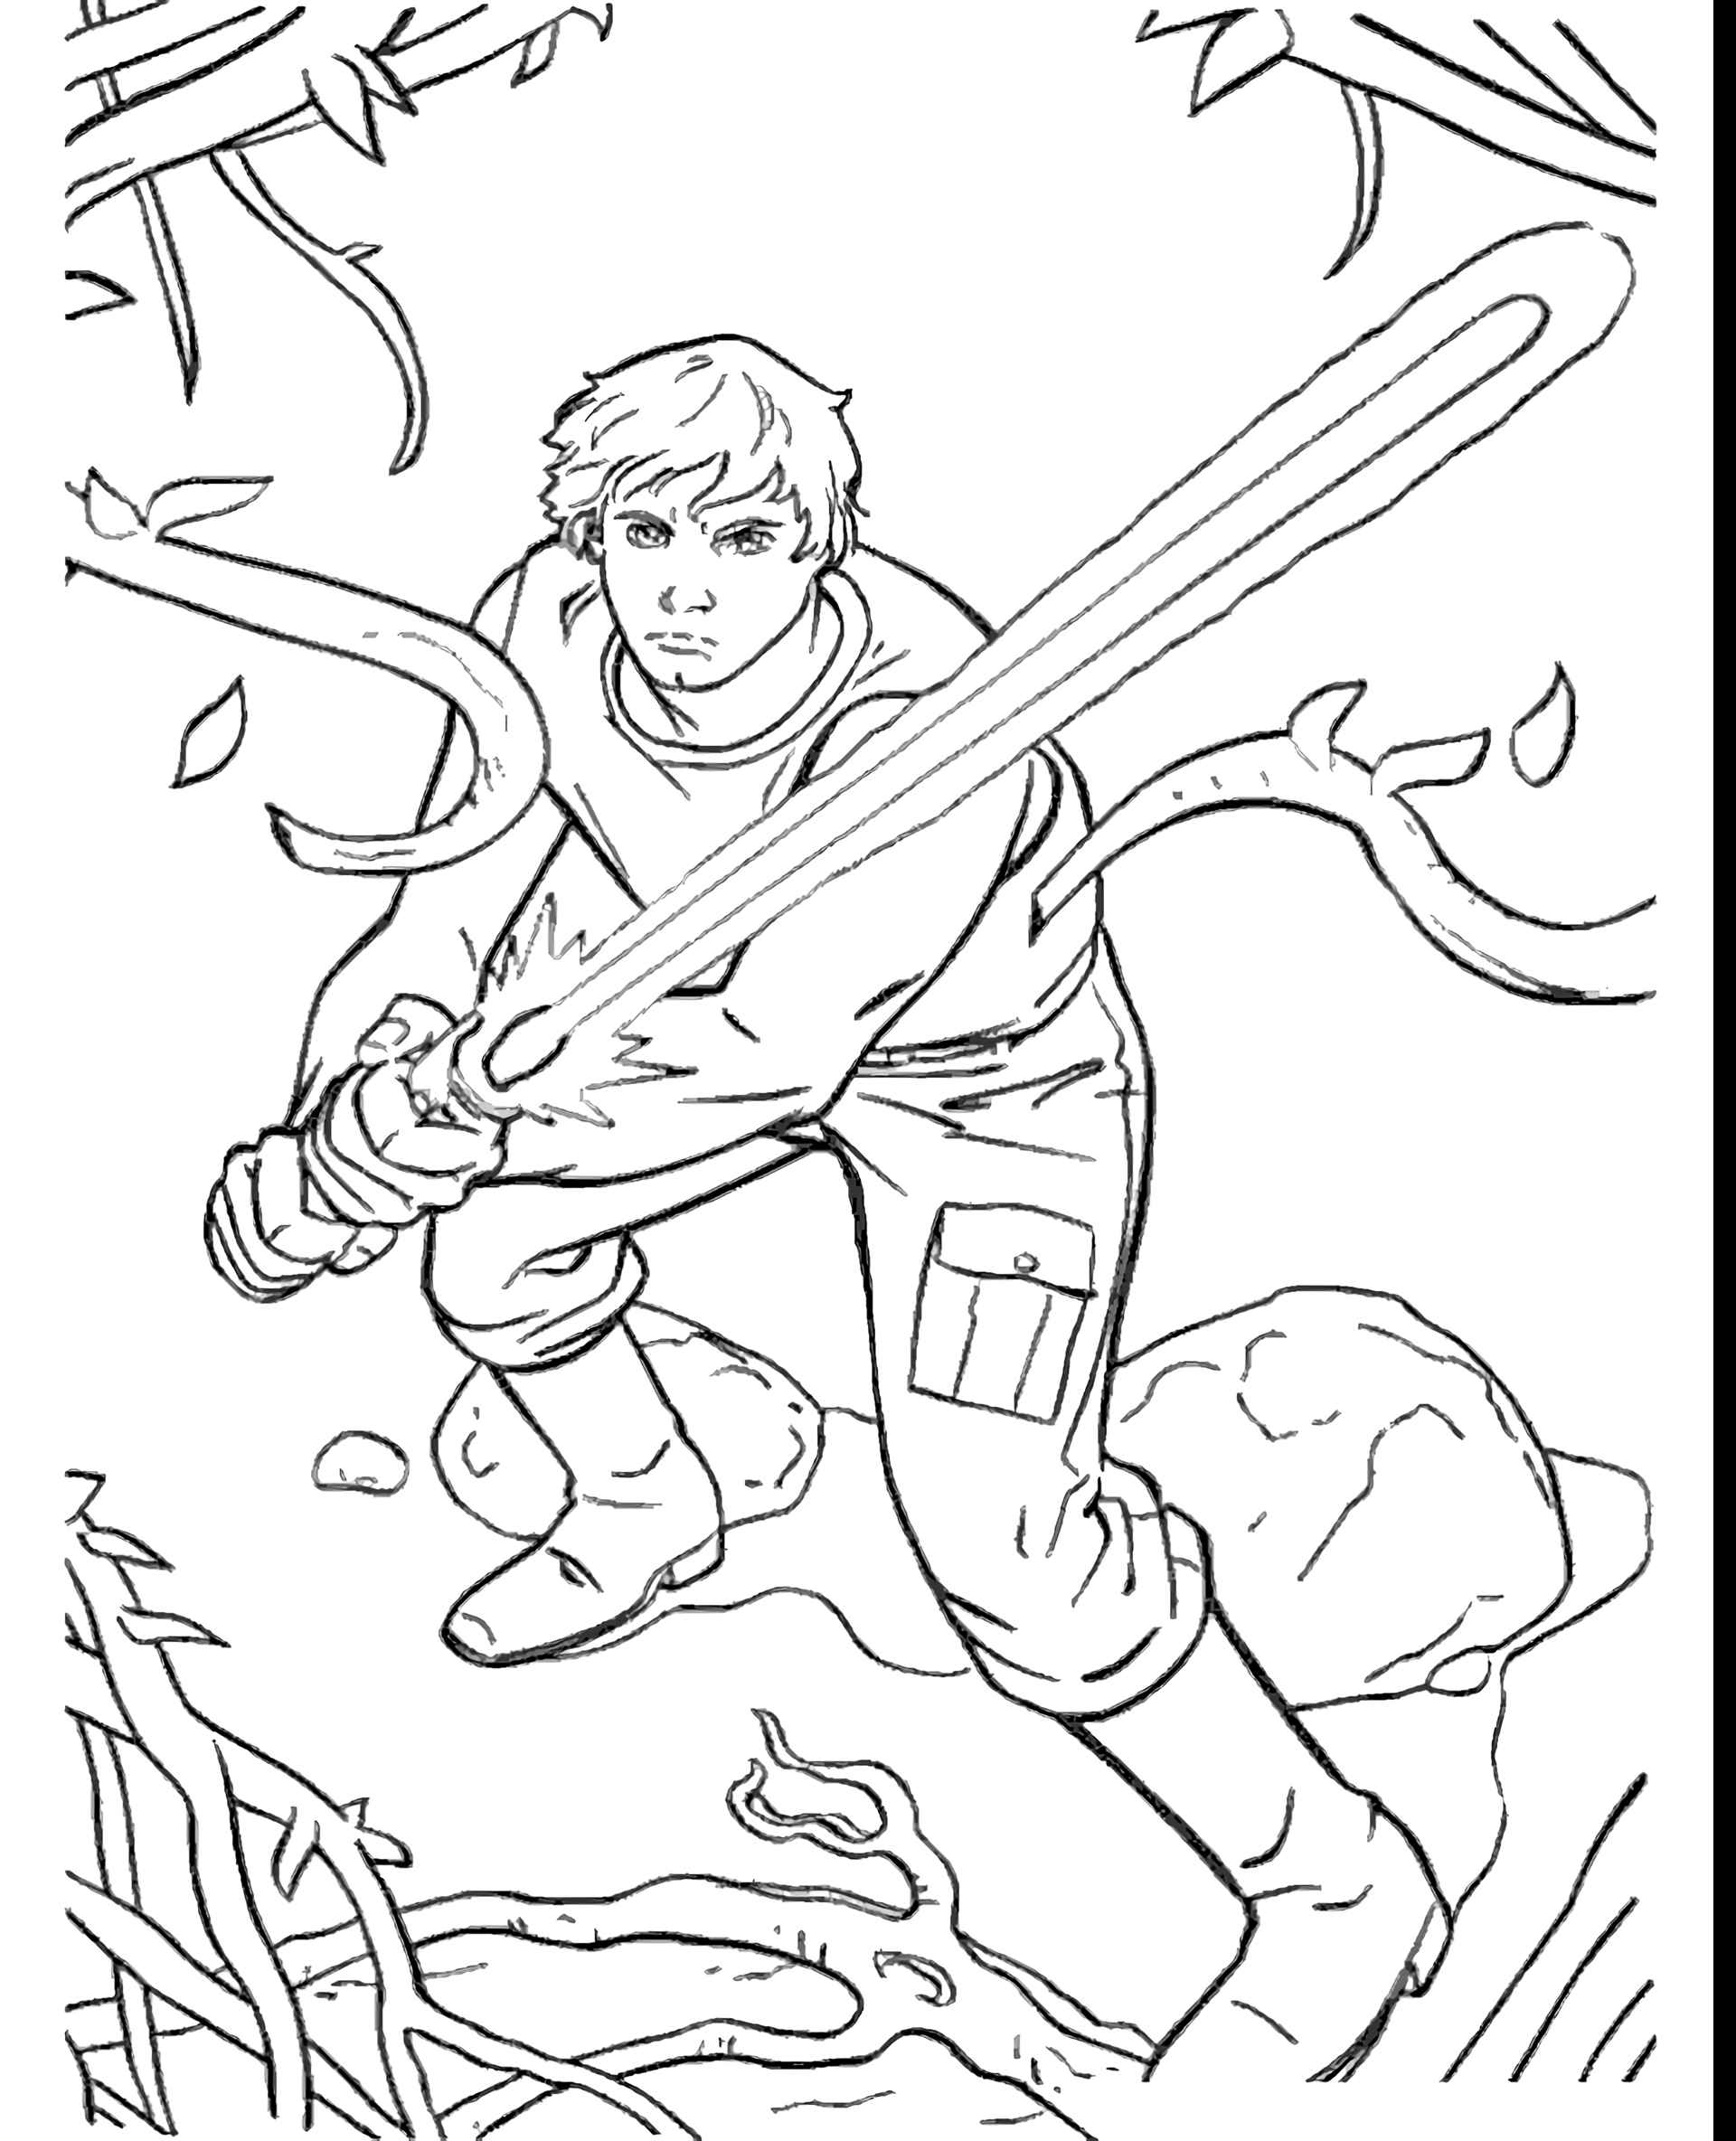 Luke Skywalker From Star Wars With Jedi Weapons Coloring Page